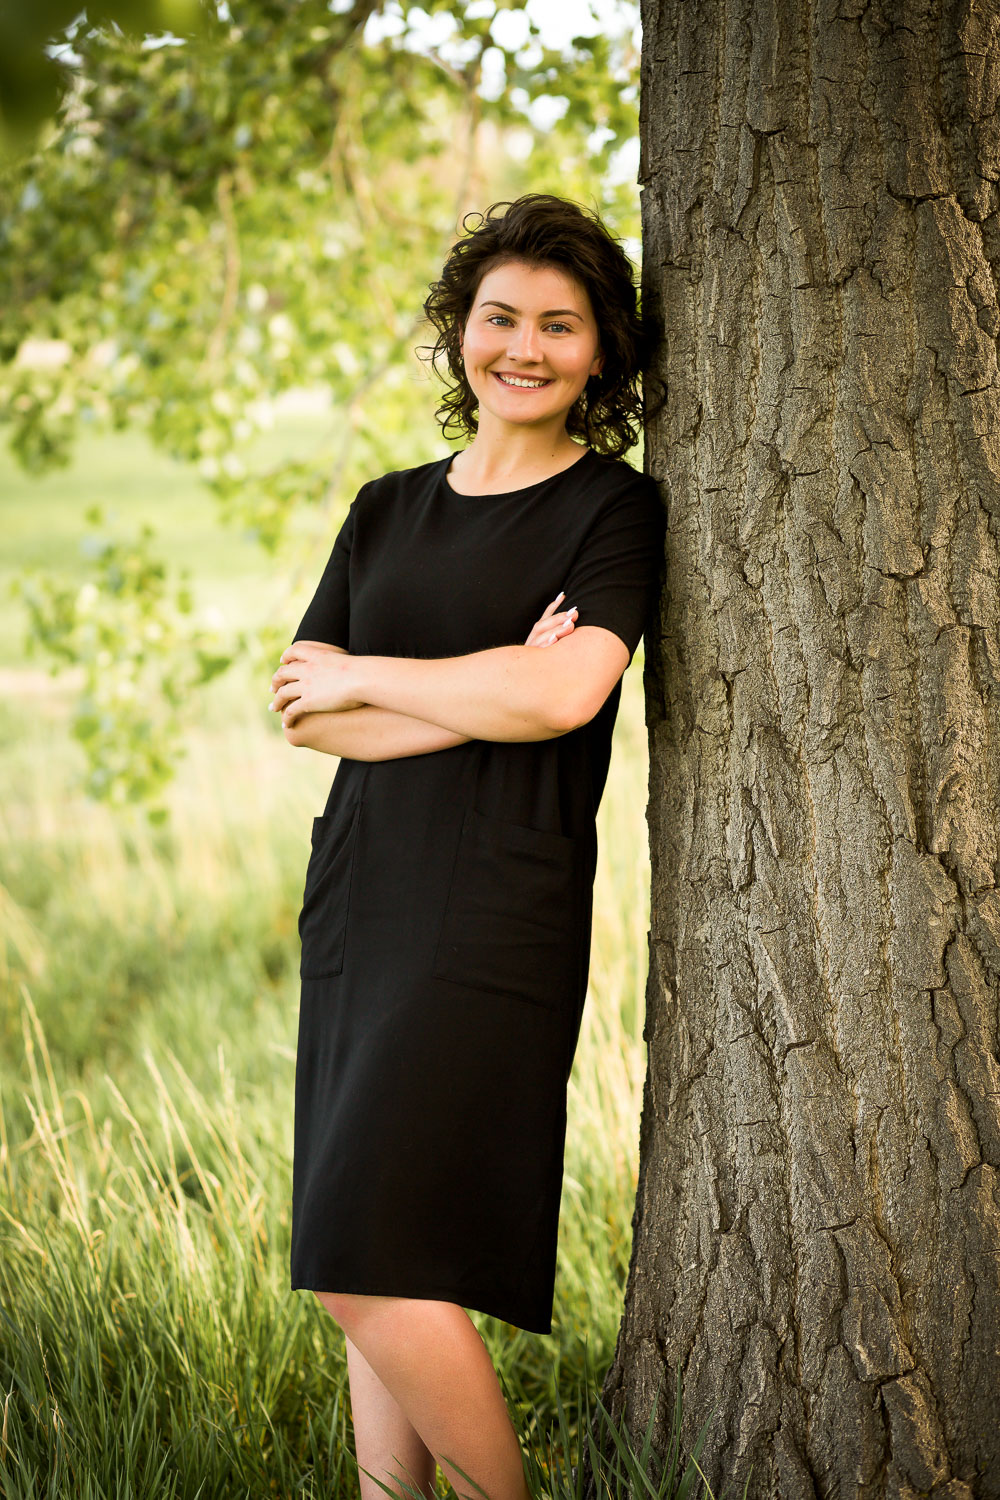 denver_senior_portrait_photographer_kathleen_bracken_photography-2.jpg